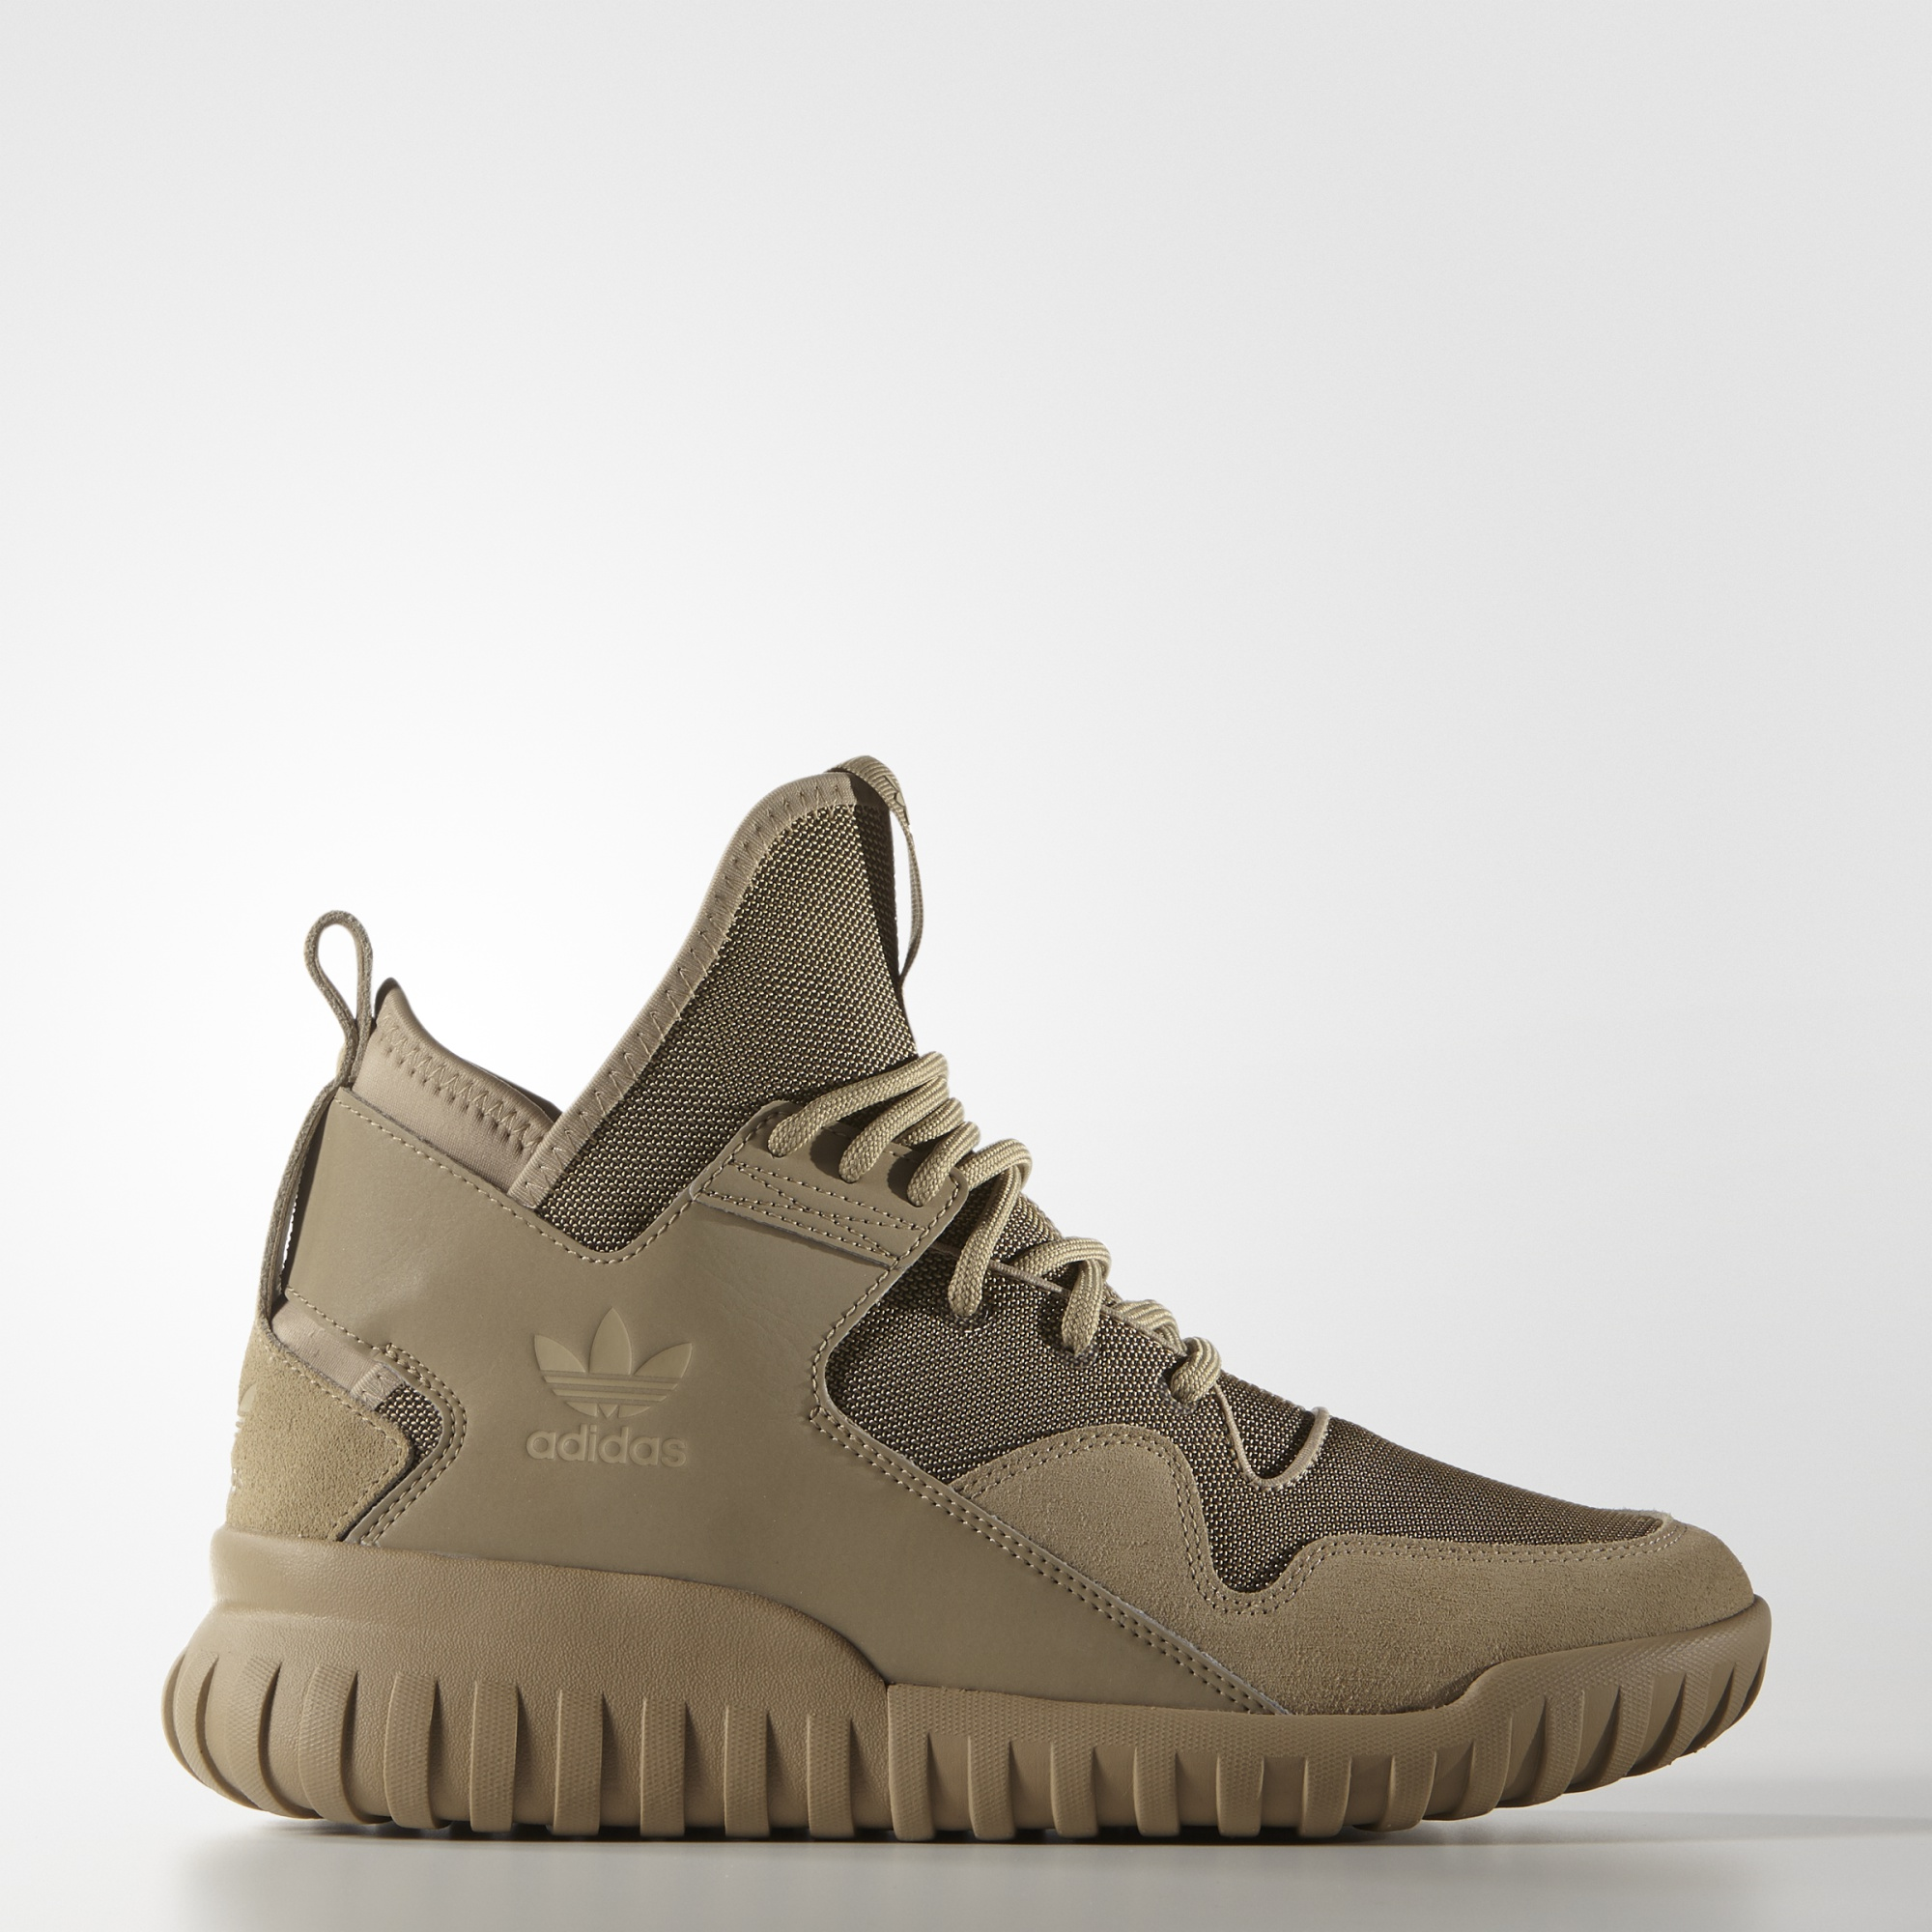 adidas Tubular X Shoes - Hemp | adidas MLT